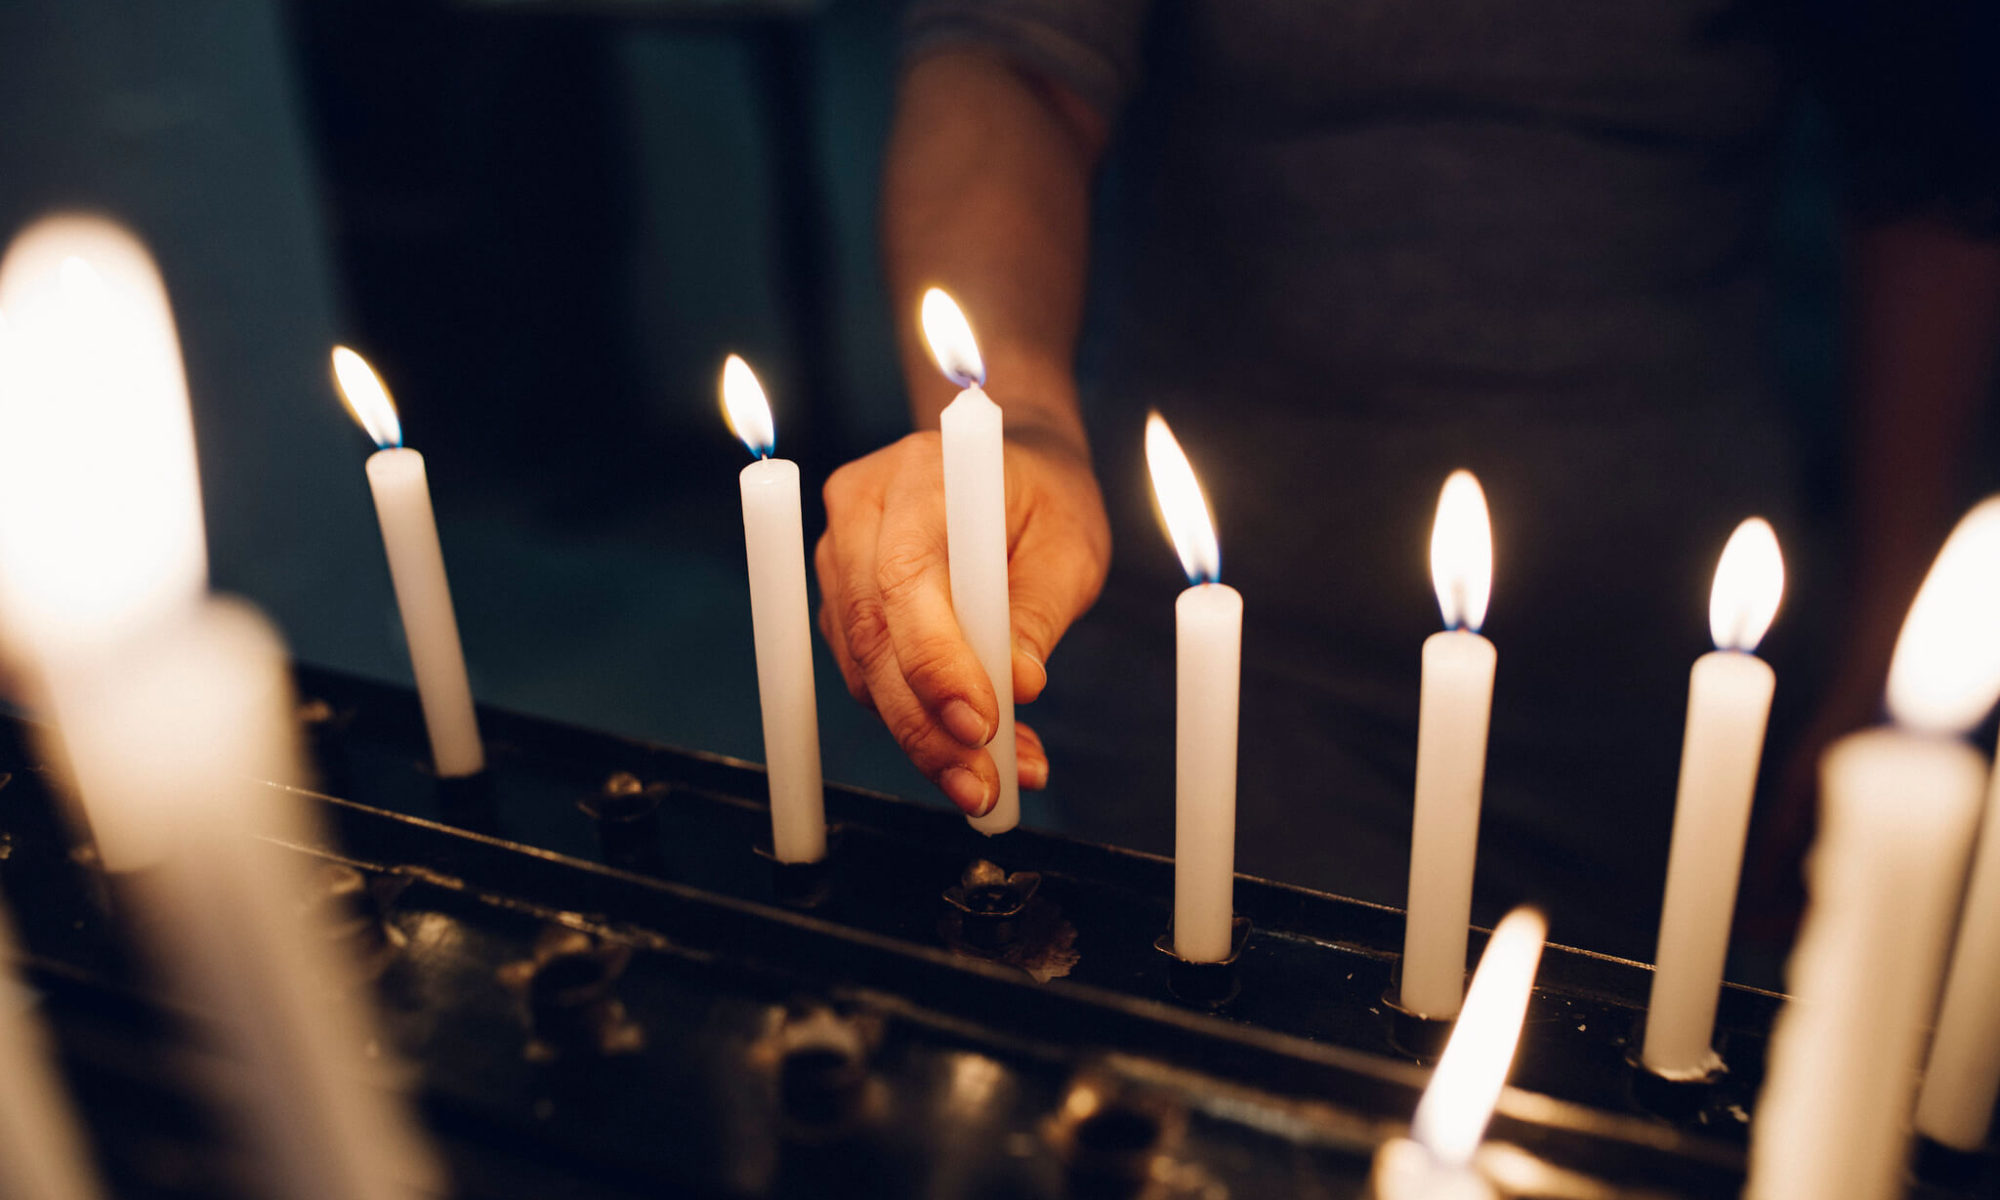 Praying with candle